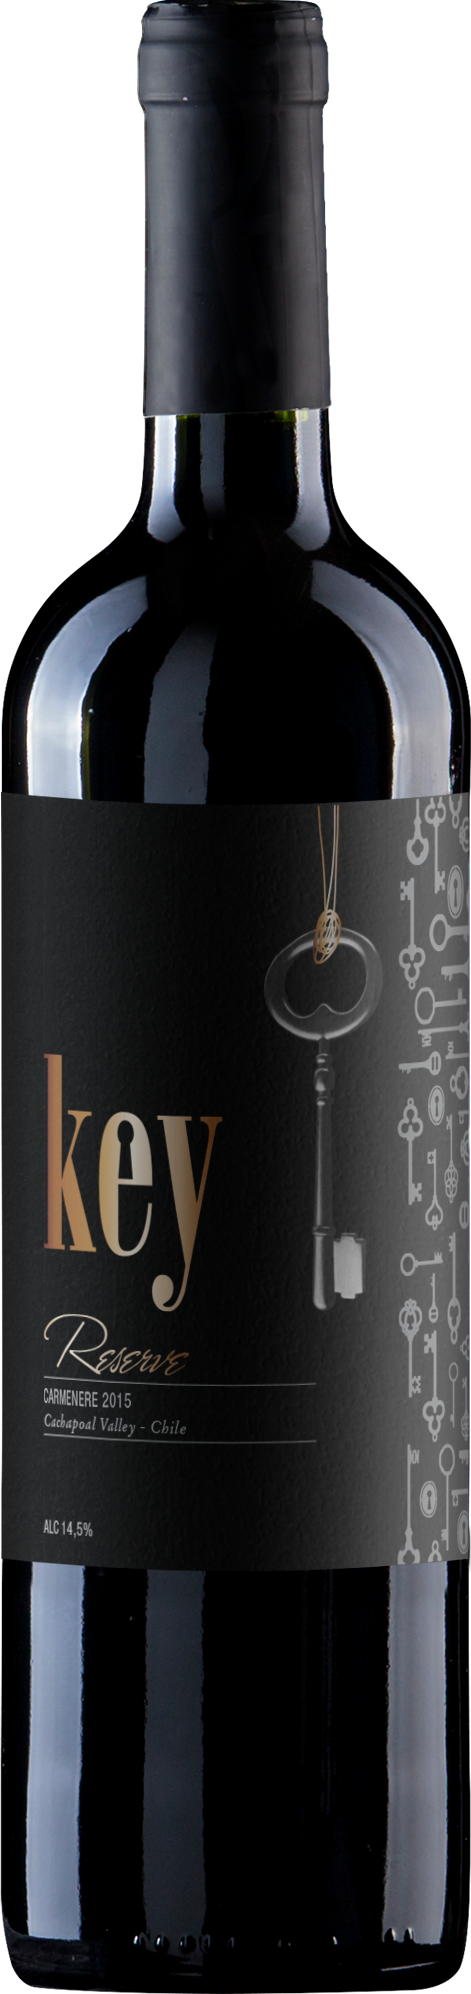 VALLE SECRETO KEY CARMENERE